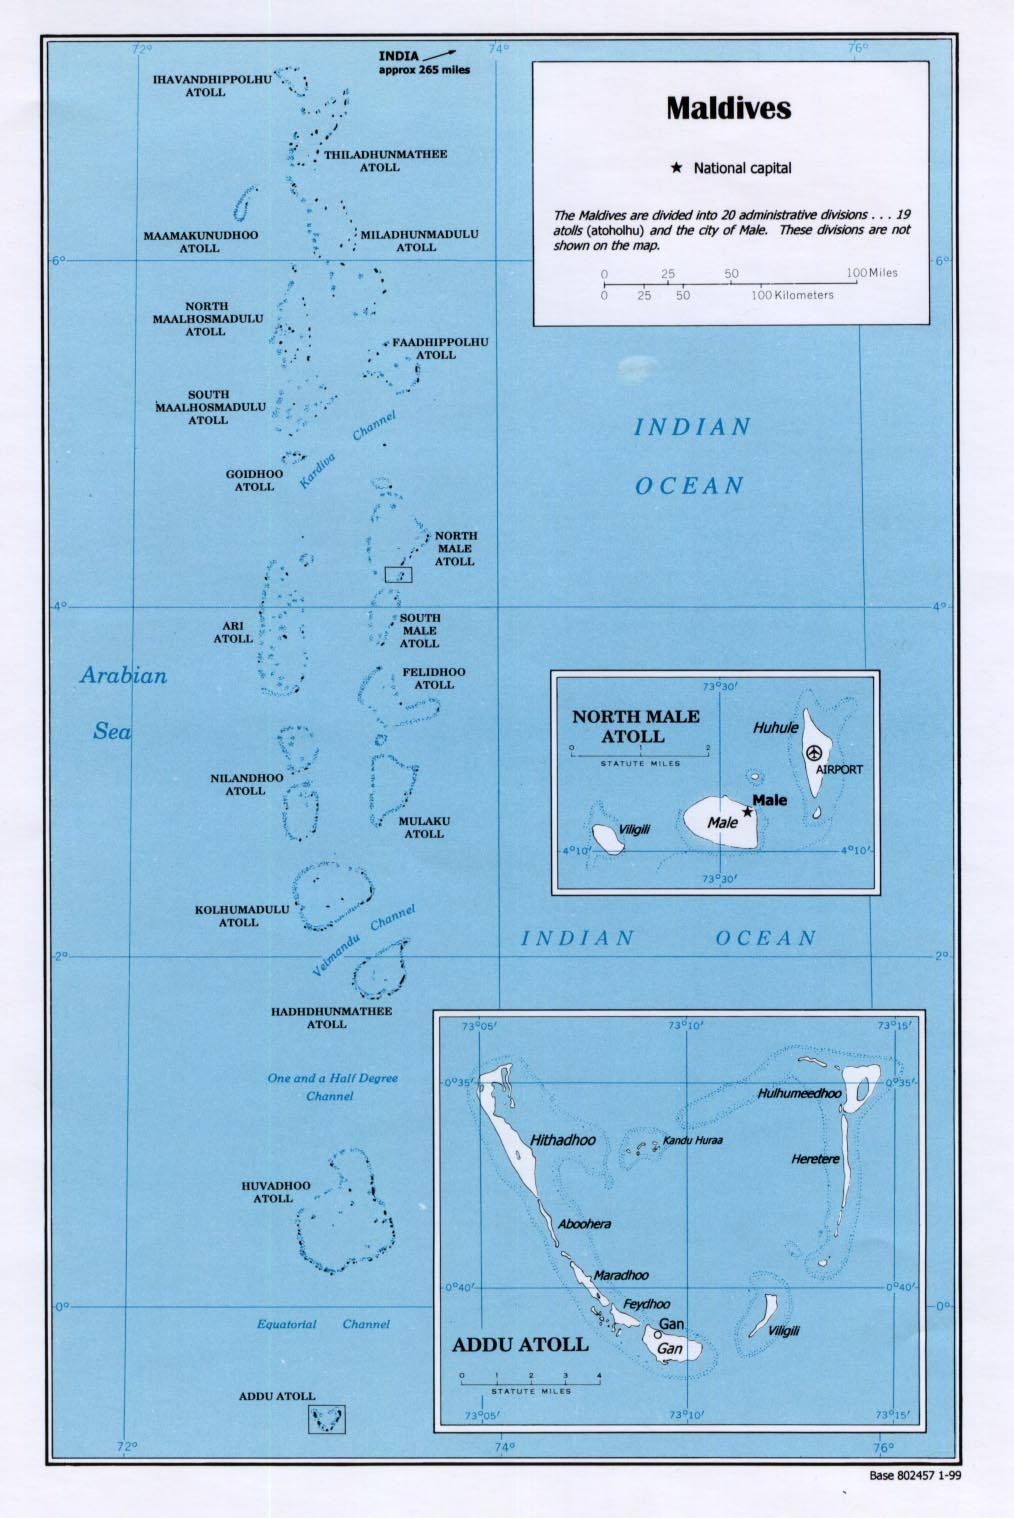 Geography of the Maldives - Wikipedia on deccan plateau map, mauritius island map, north male atoll map, japan map, india map, far east map, canary islands map, china map, malaysia map, bora bora, indian ocean, mozambique map, bora bora map, bahrain map, caribbean map, tajikistan map, united kingdom map, brunei map, diego garcia map, sri lanka, indian ocean map, mongolia map, portugal map,